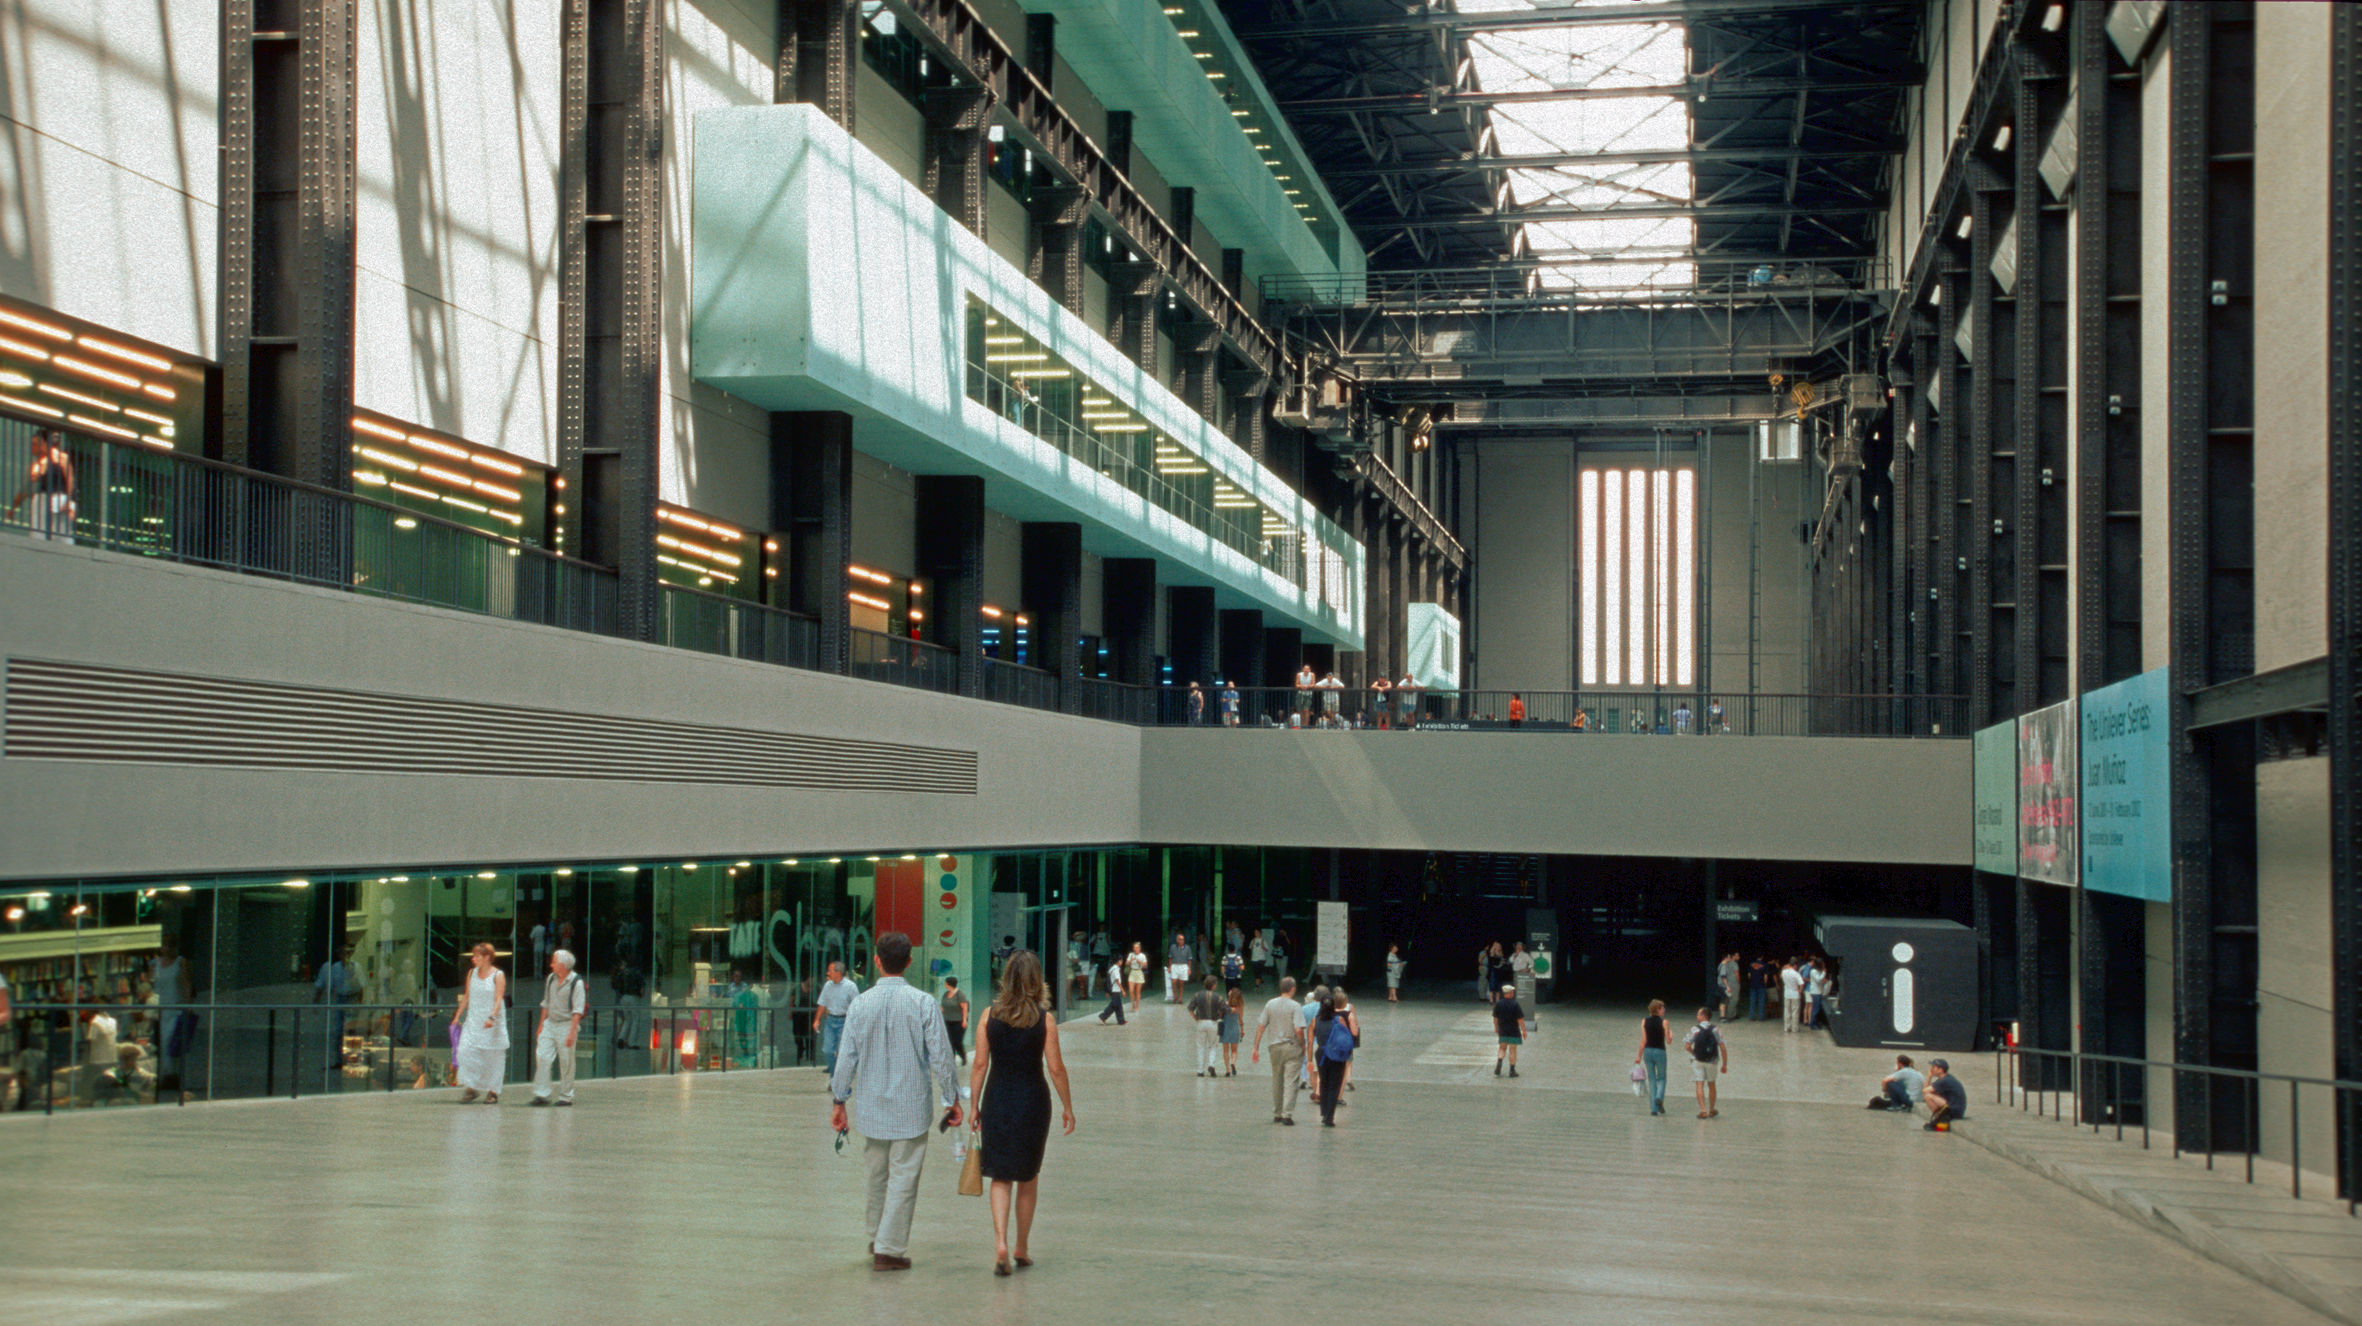 File:Tate modern london 2001 03.jpg - Wikimedia Commons